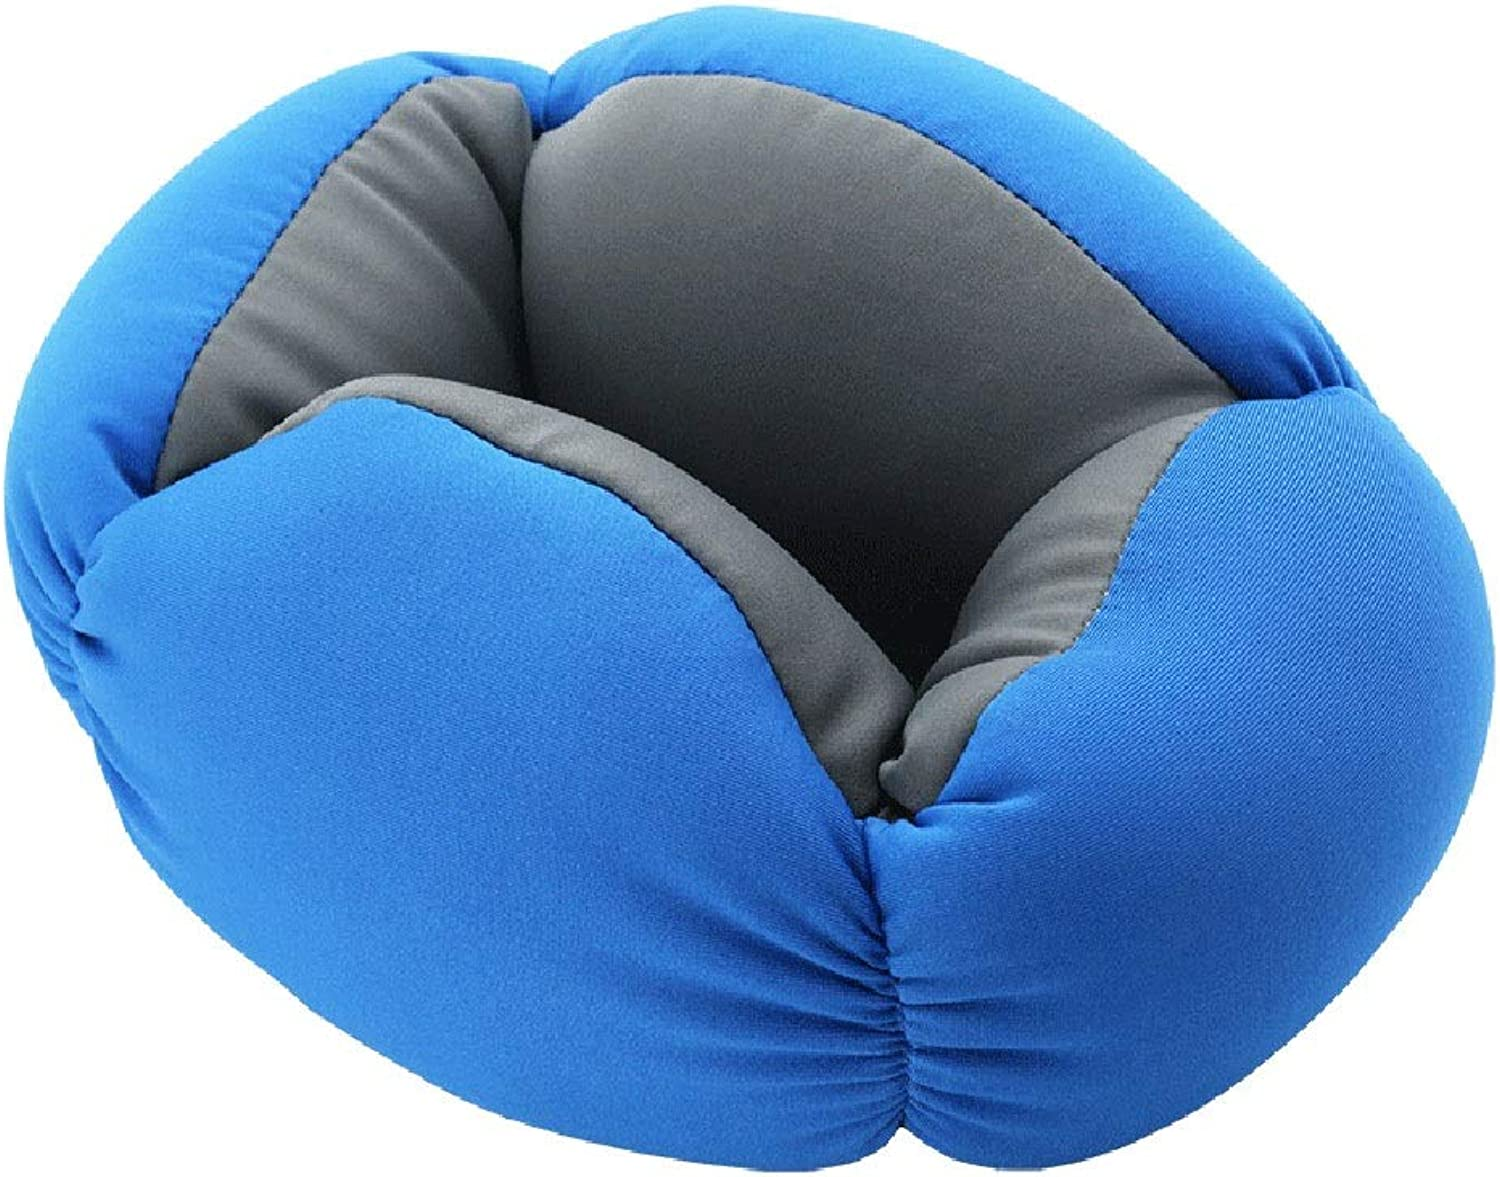 ZH Pillow Goggles Travel Nap Pillows, Mini Students Lunch Break Pillows, Office Lazy Pillows